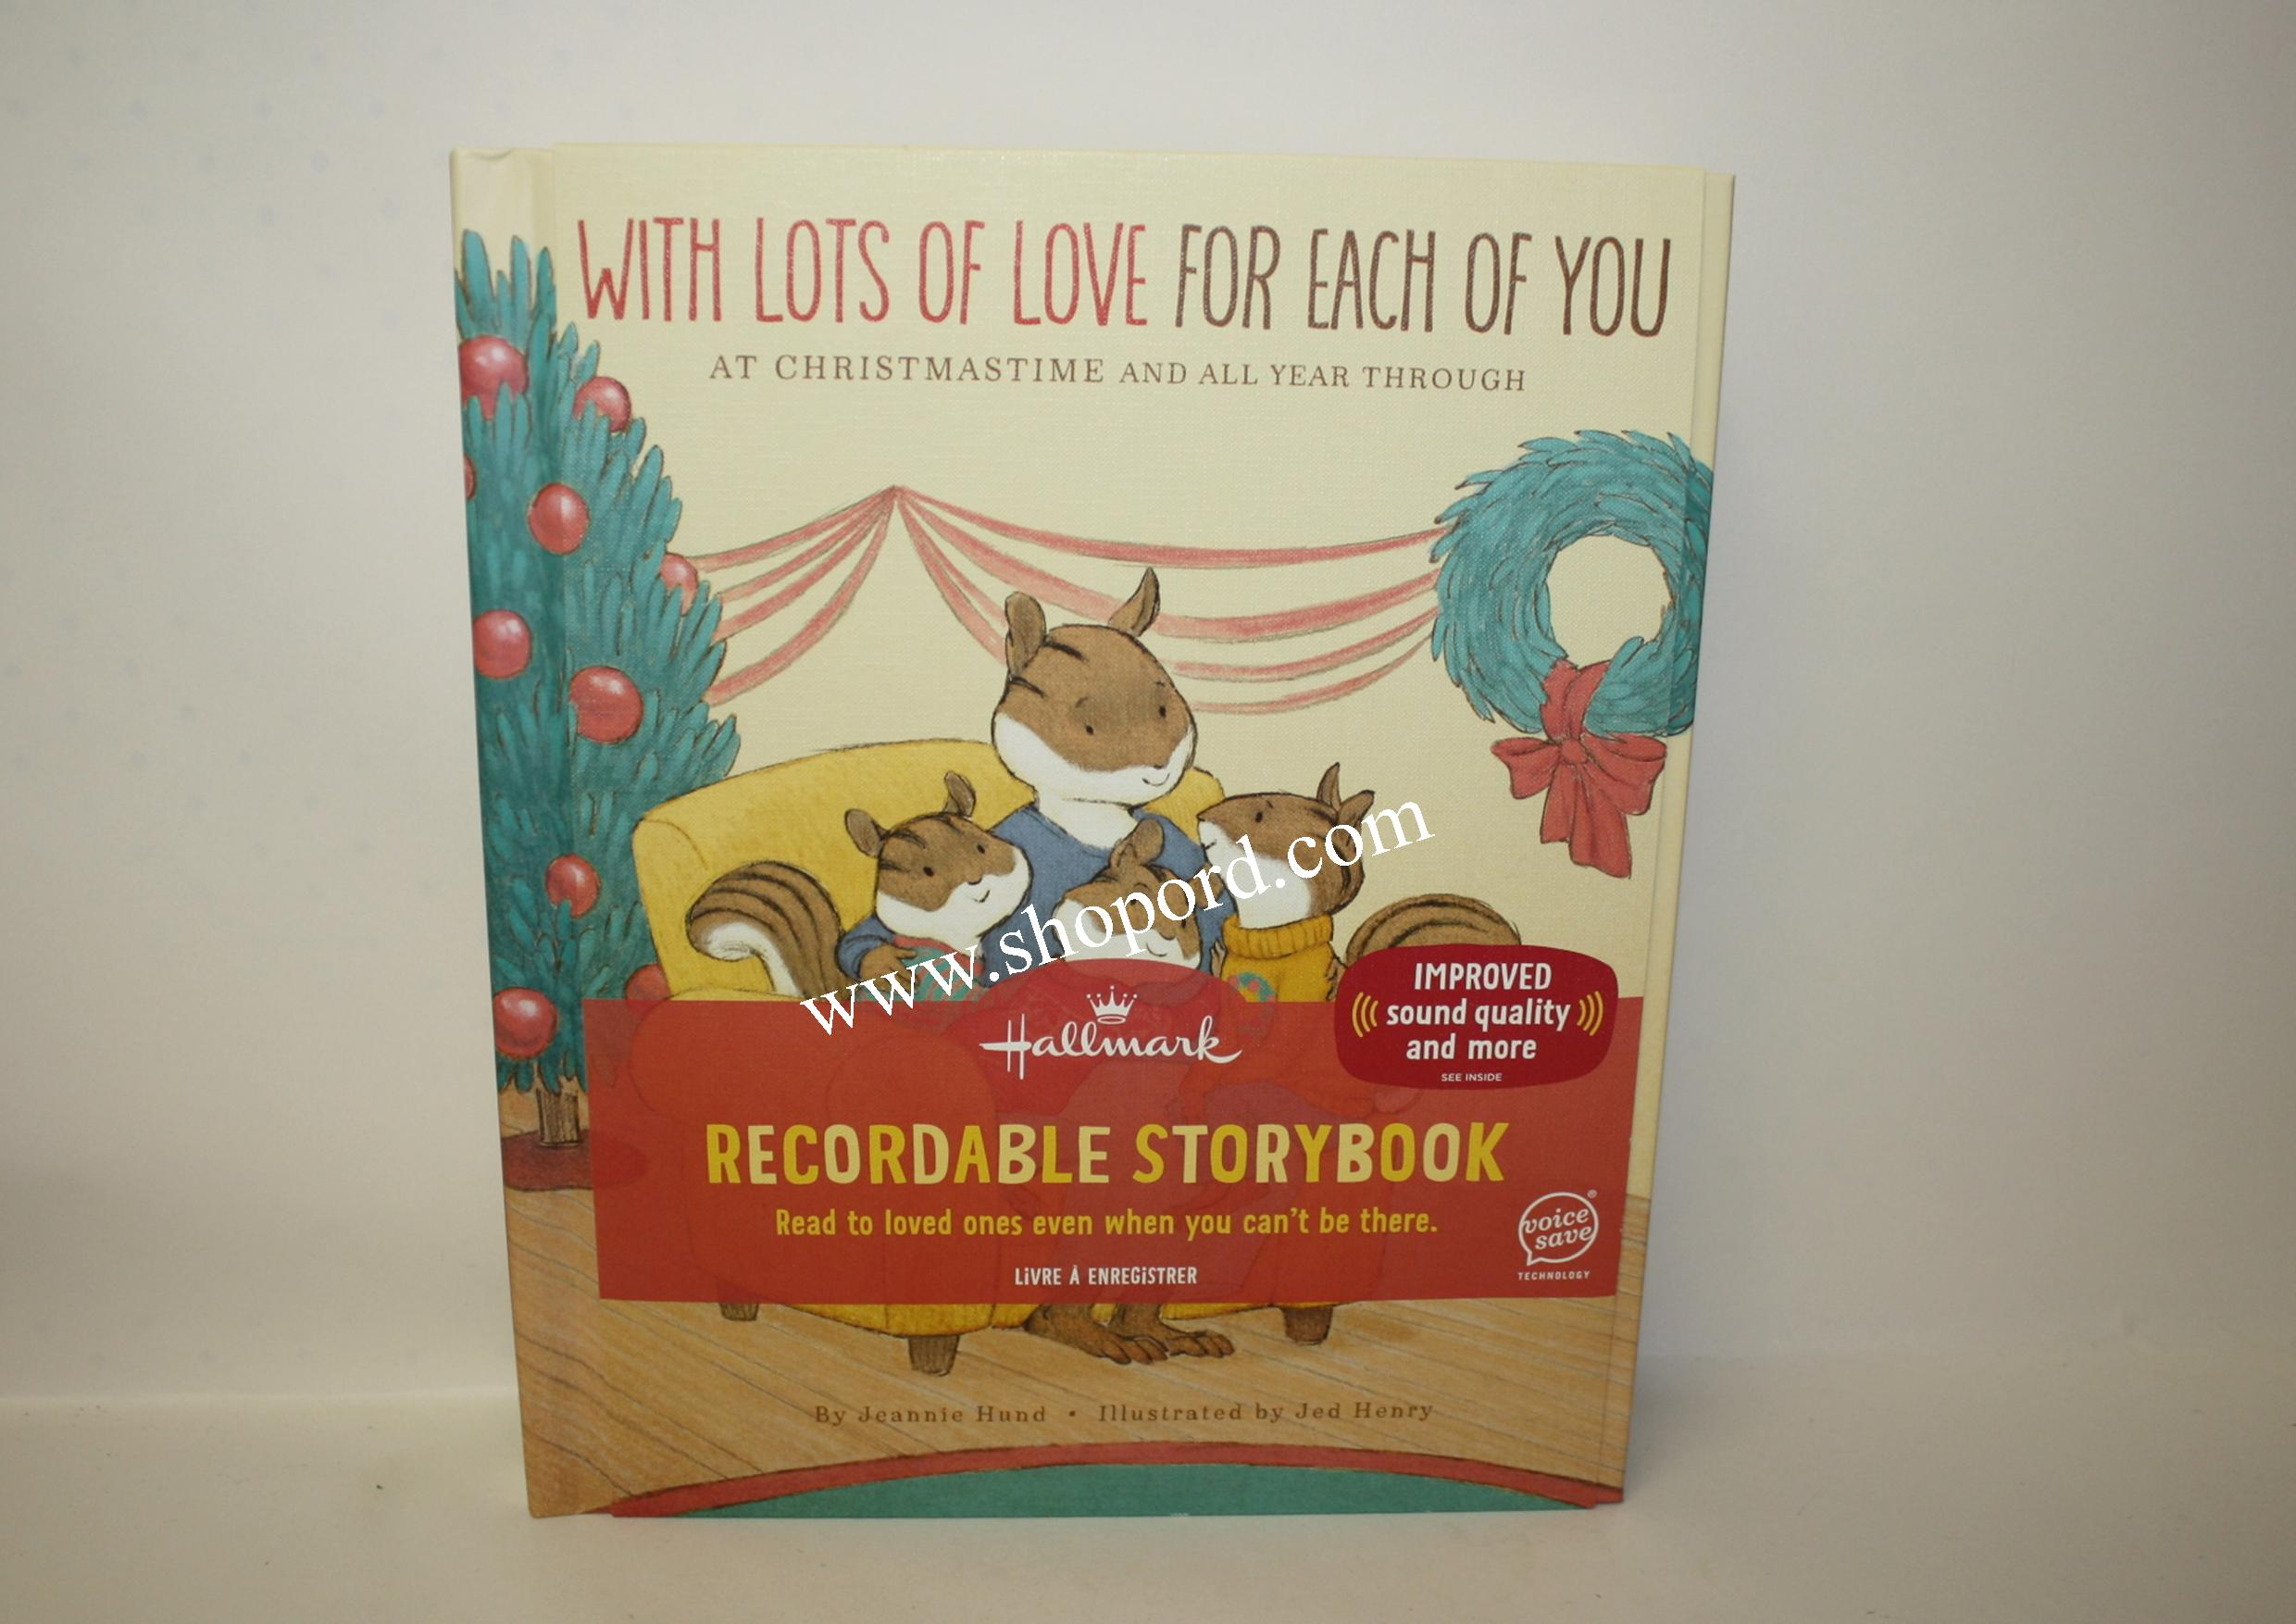 Hallmark Recordable Storybook With Lots Of Love For Each Of You At Christmas Time And All Year Through KOB8154